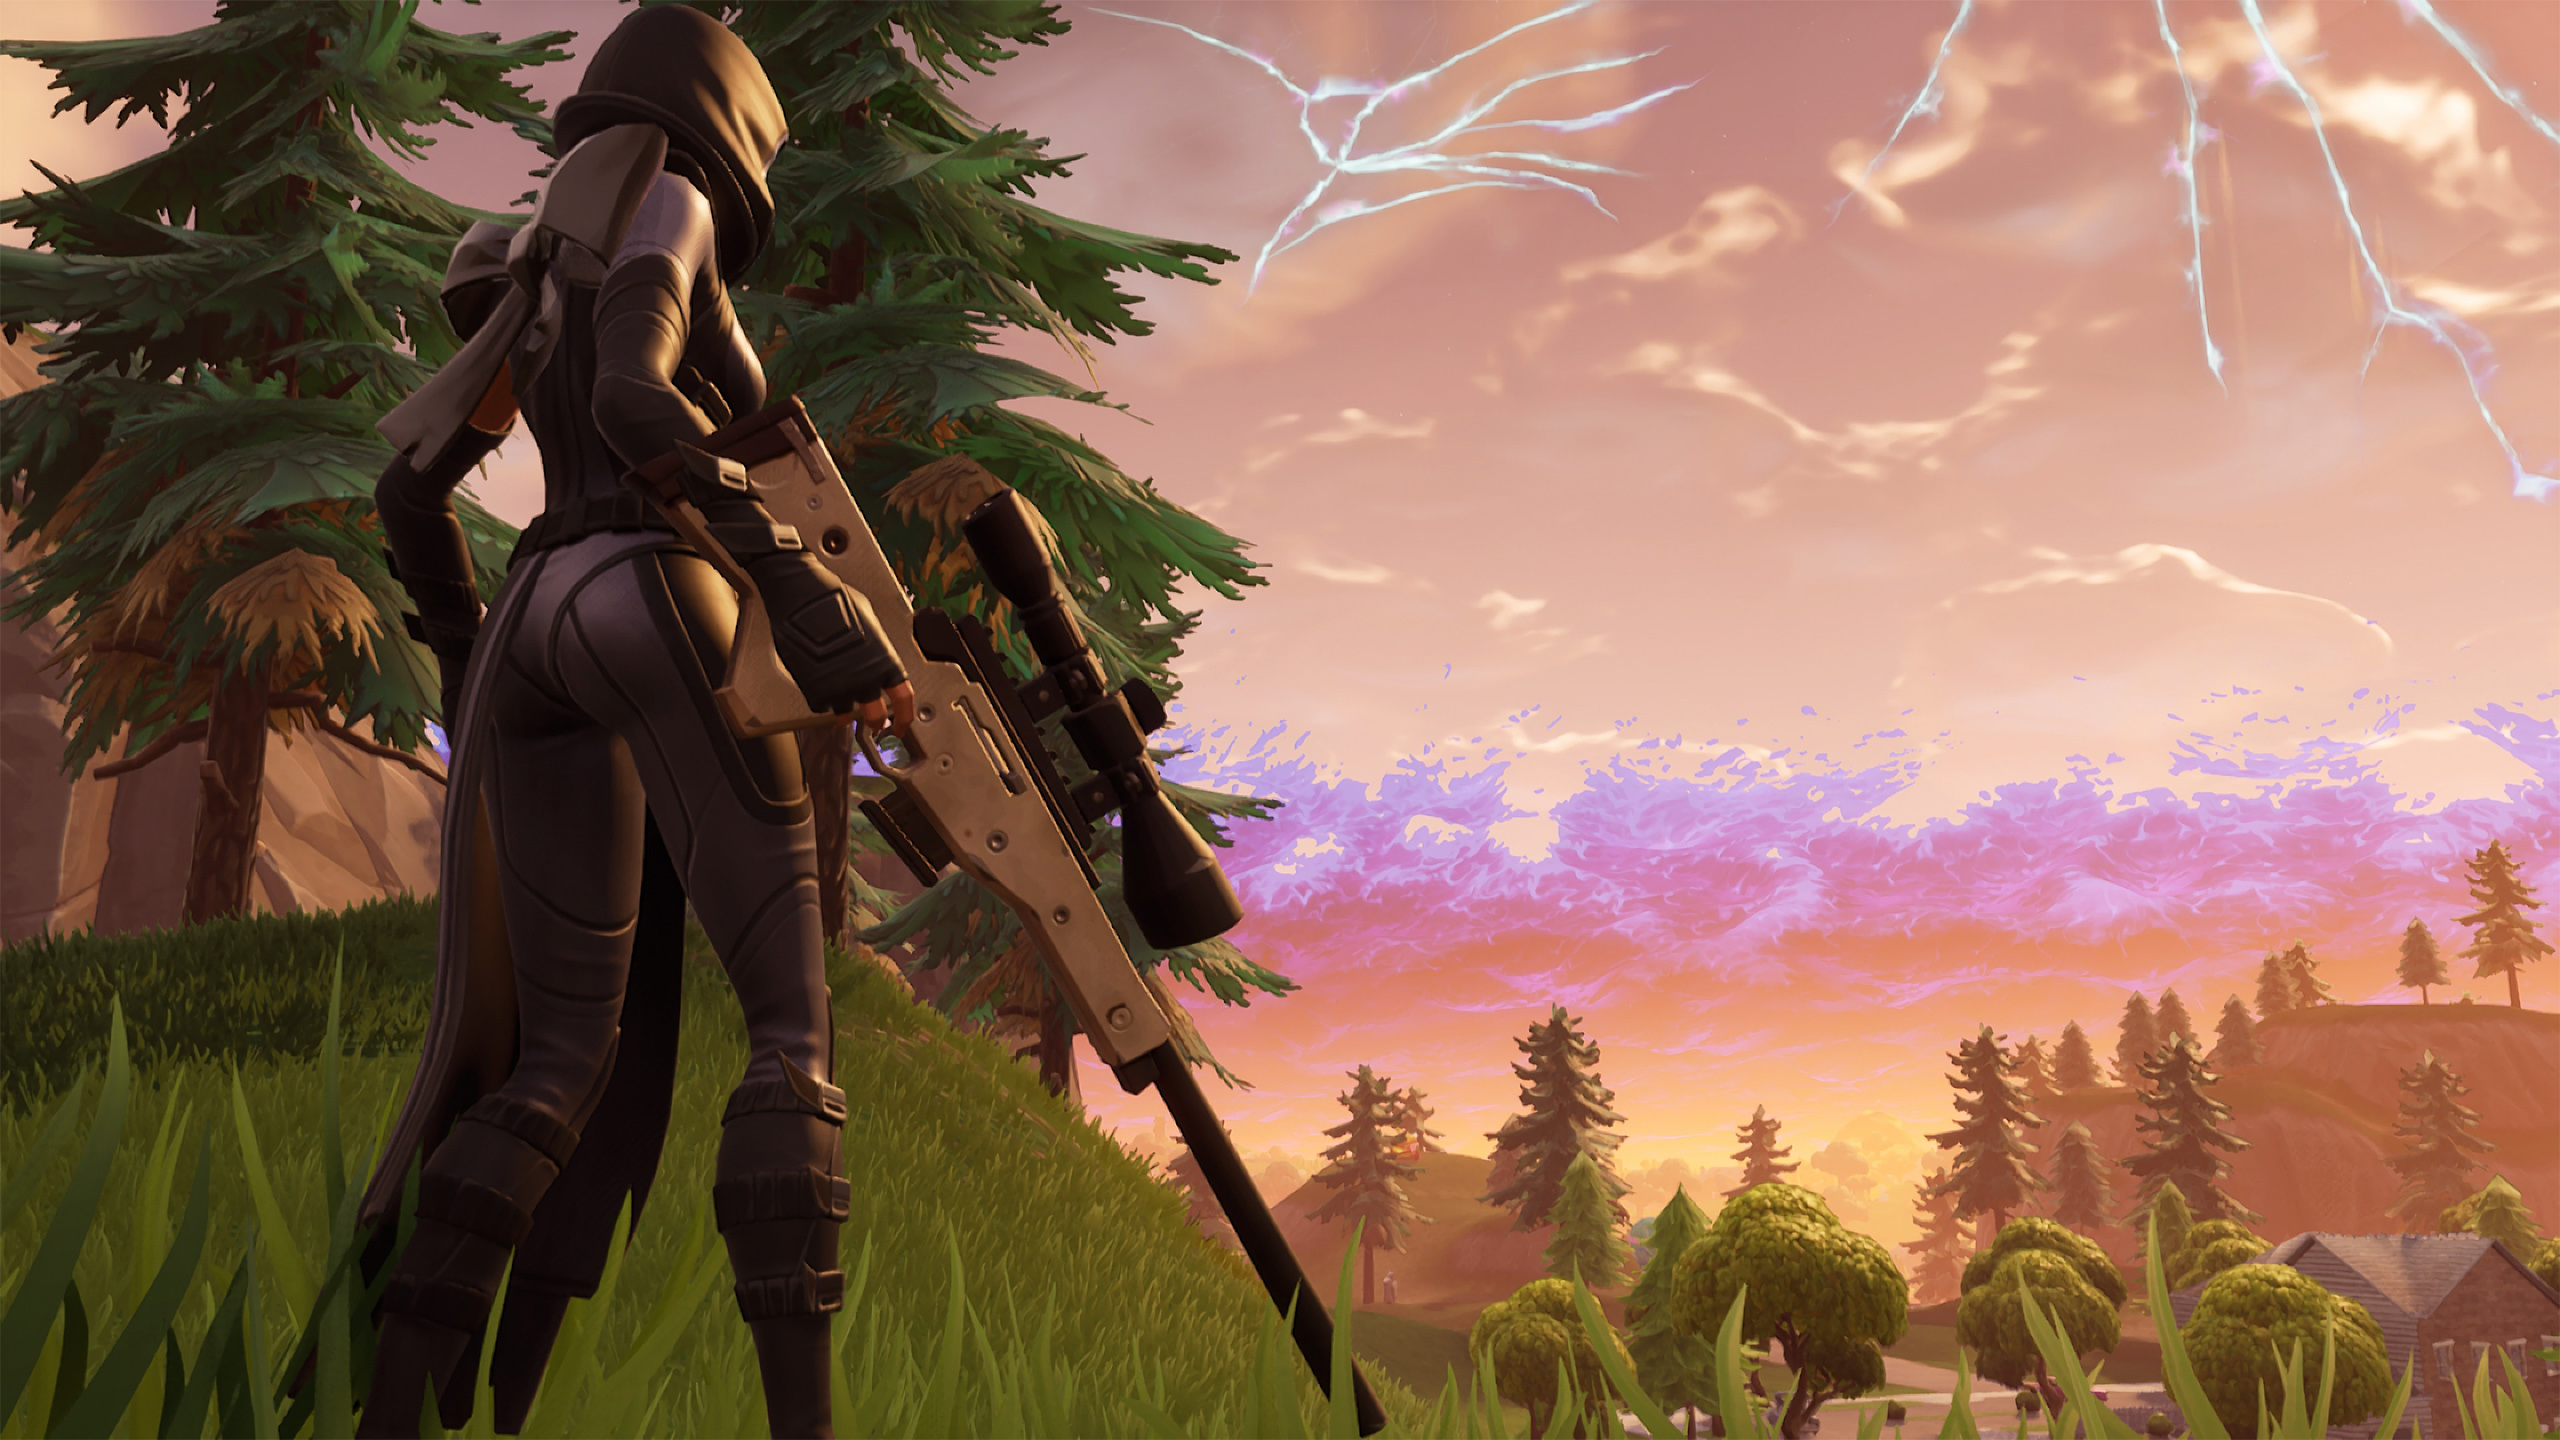 Fate From Fortnite Wallpaper 2k Quad Hd Id 3761